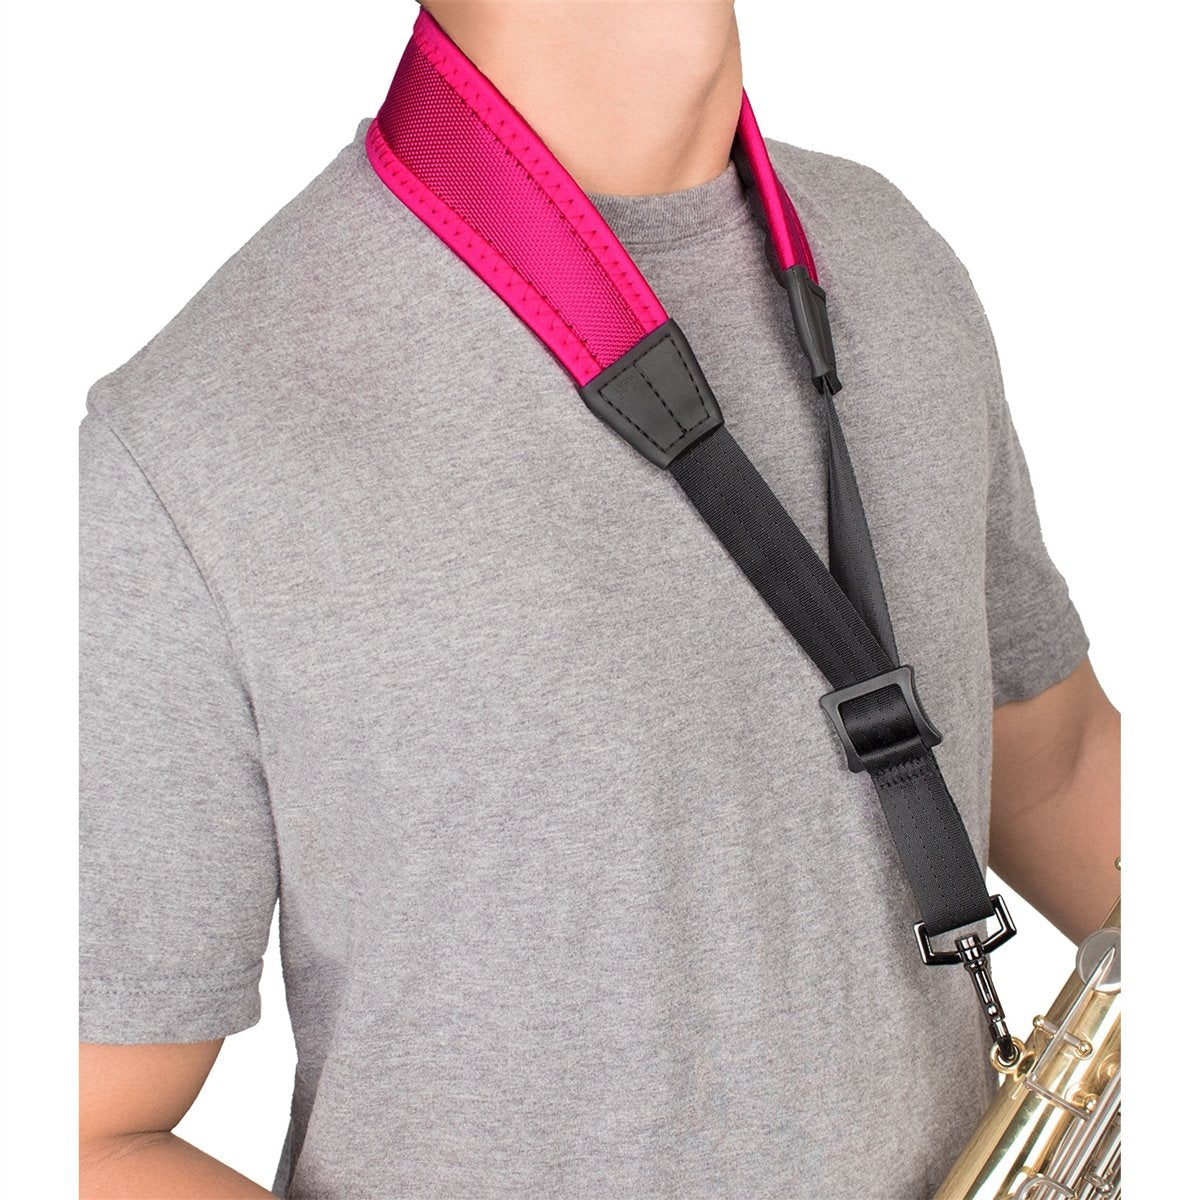 Protec - 22″ (Regular) Ballistic Neoprene Less-Stress Saxophone Neck Strap-Accessories-Protec-Hot Pink-Music Elements